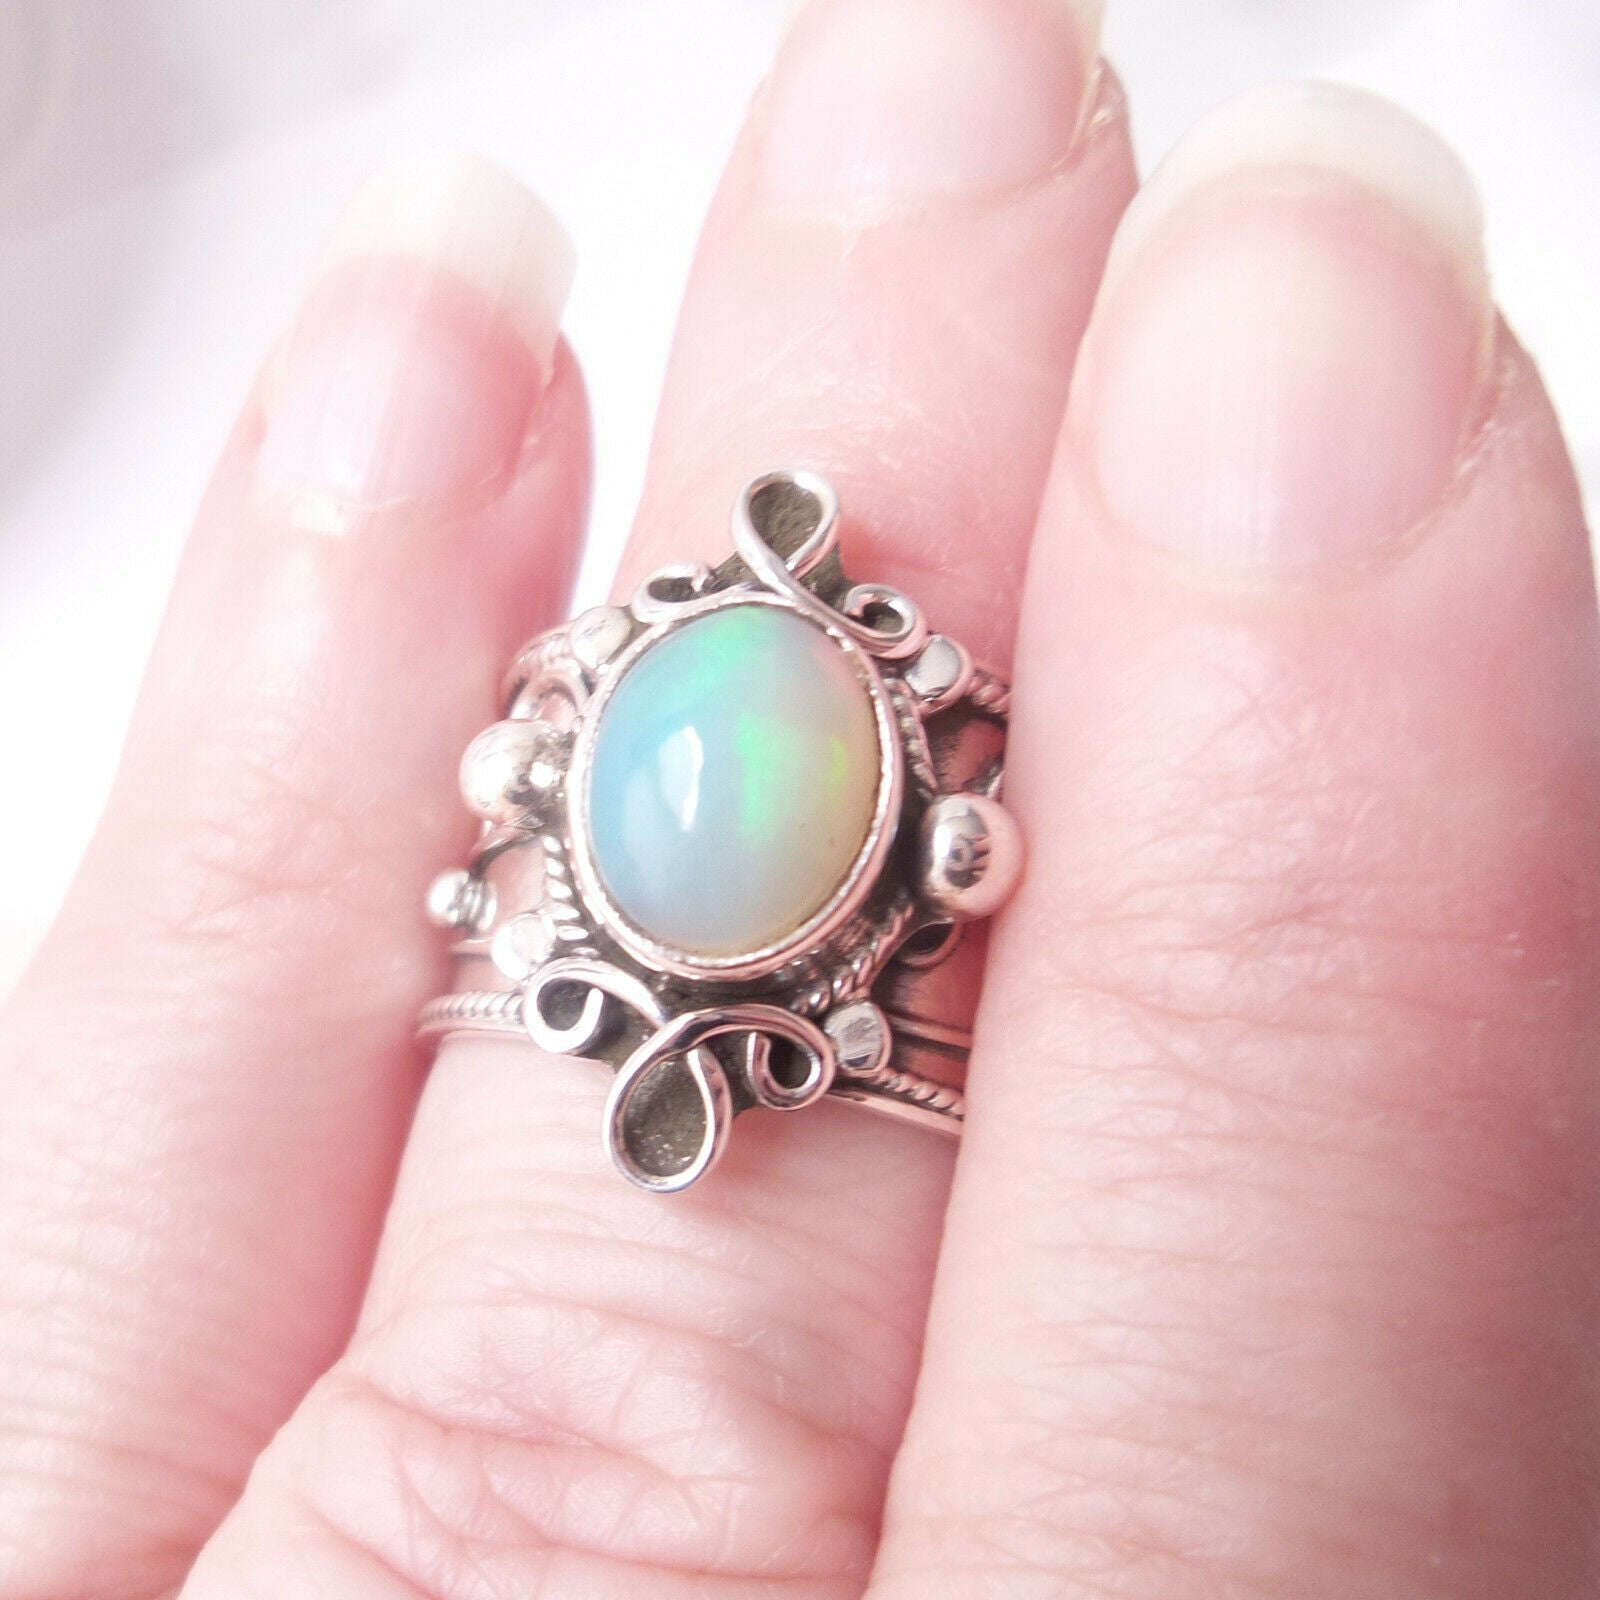 Opal .925 Solid Sterling Silver Cocktail Ring Size 9.75 Boho Chic Jewelry Gift